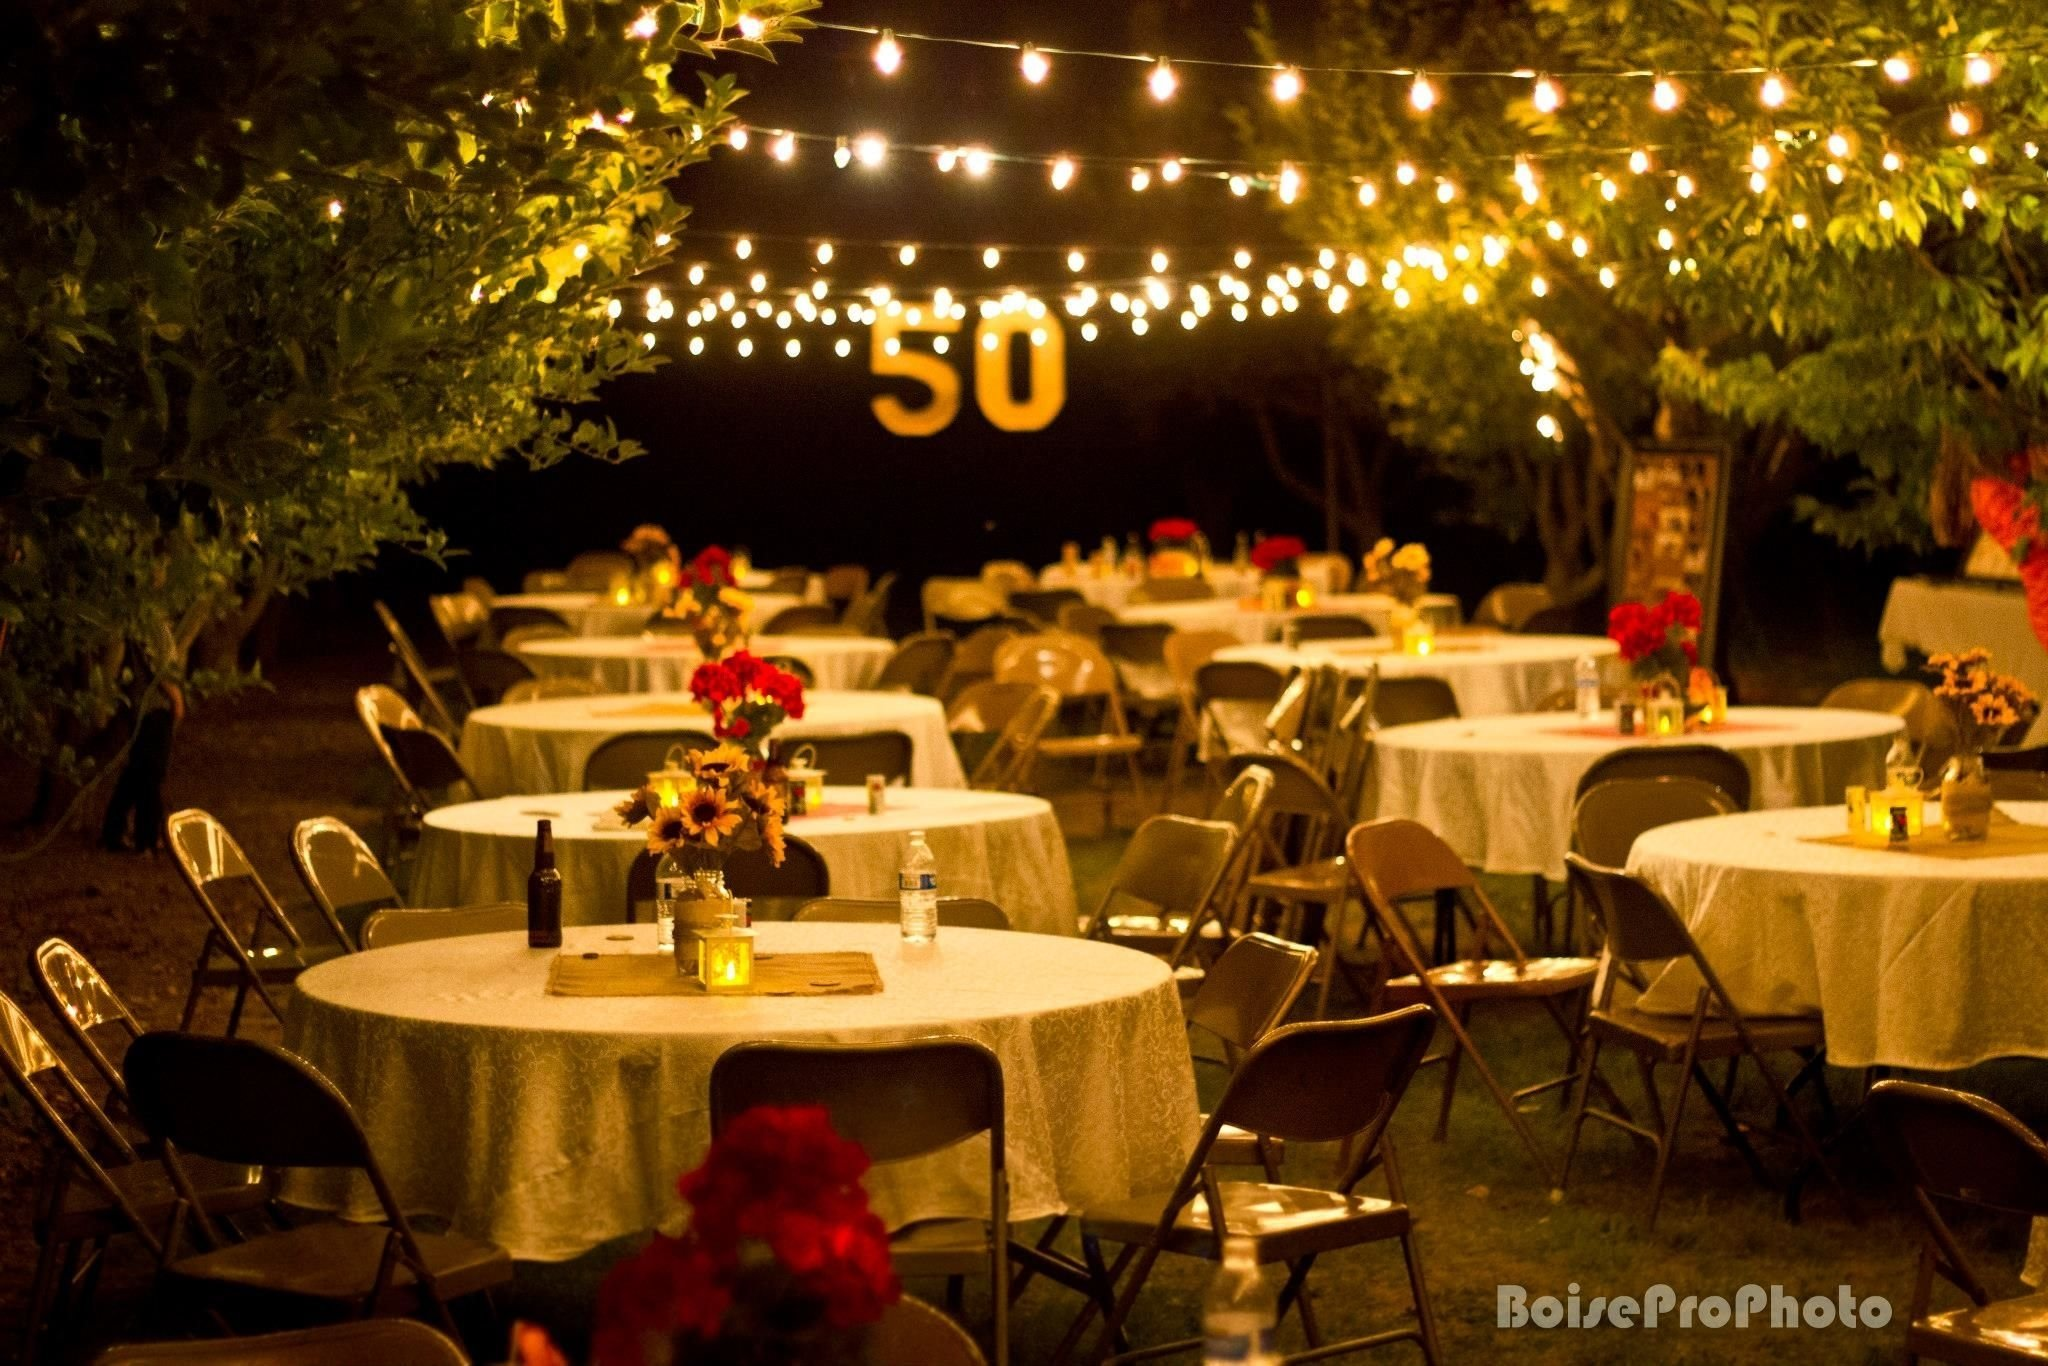 diy 50th wedding anniversary party from salty bison | anniversary